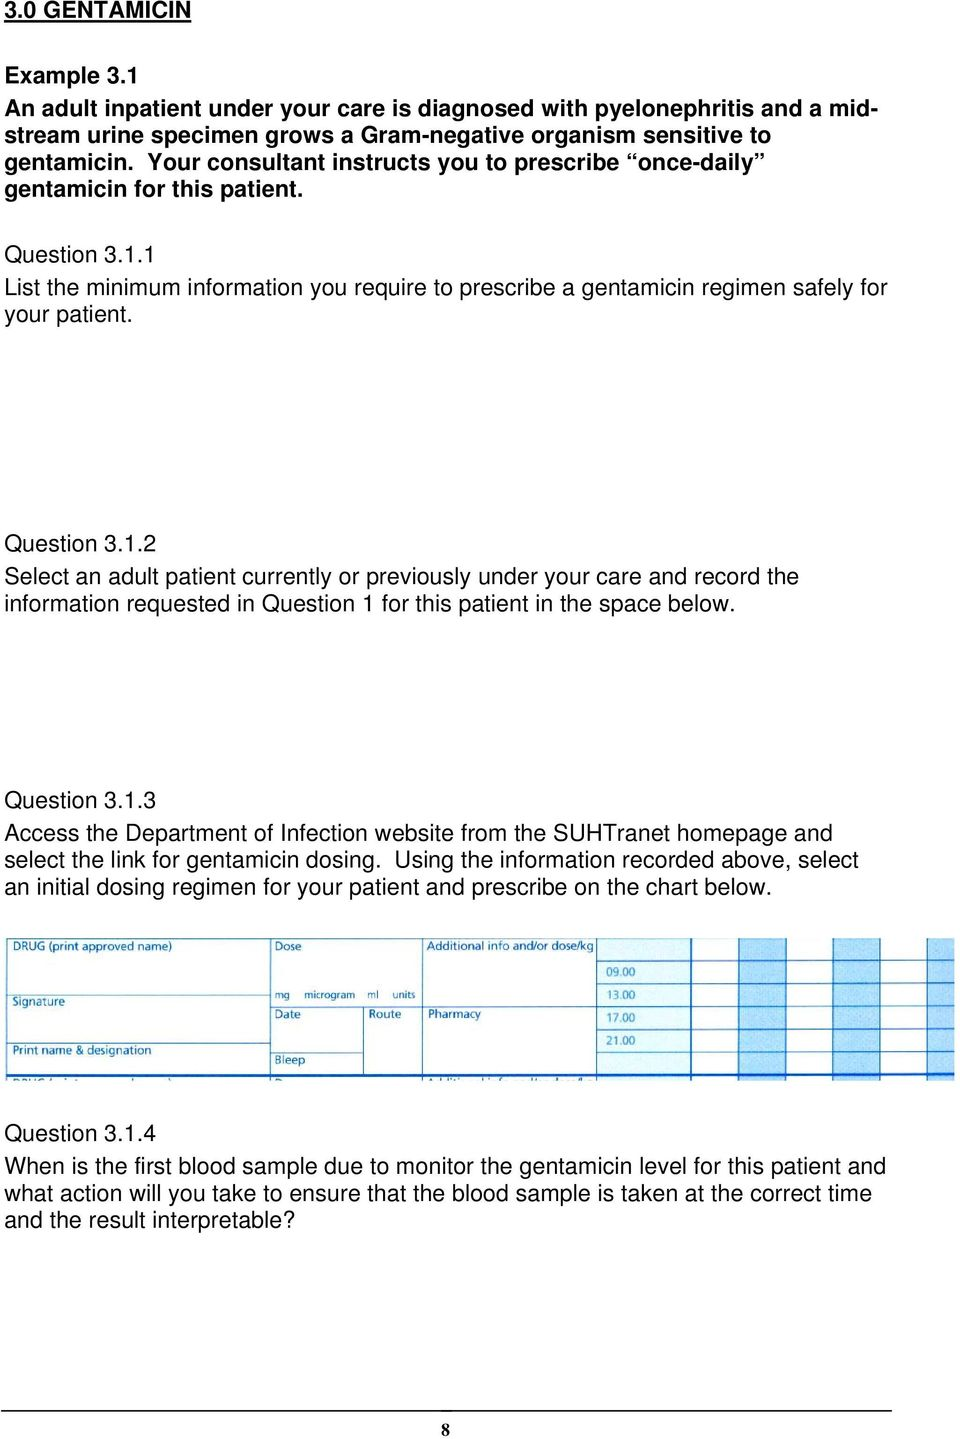 Question 3.1.2 Select an adult patient currently or previously under your care and record the information requested in Question 1 for this patient in the space below. Question 3.1.3 Access the Department of Infection website from the SUHTranet homepage and select the link for gentamicin dosing.